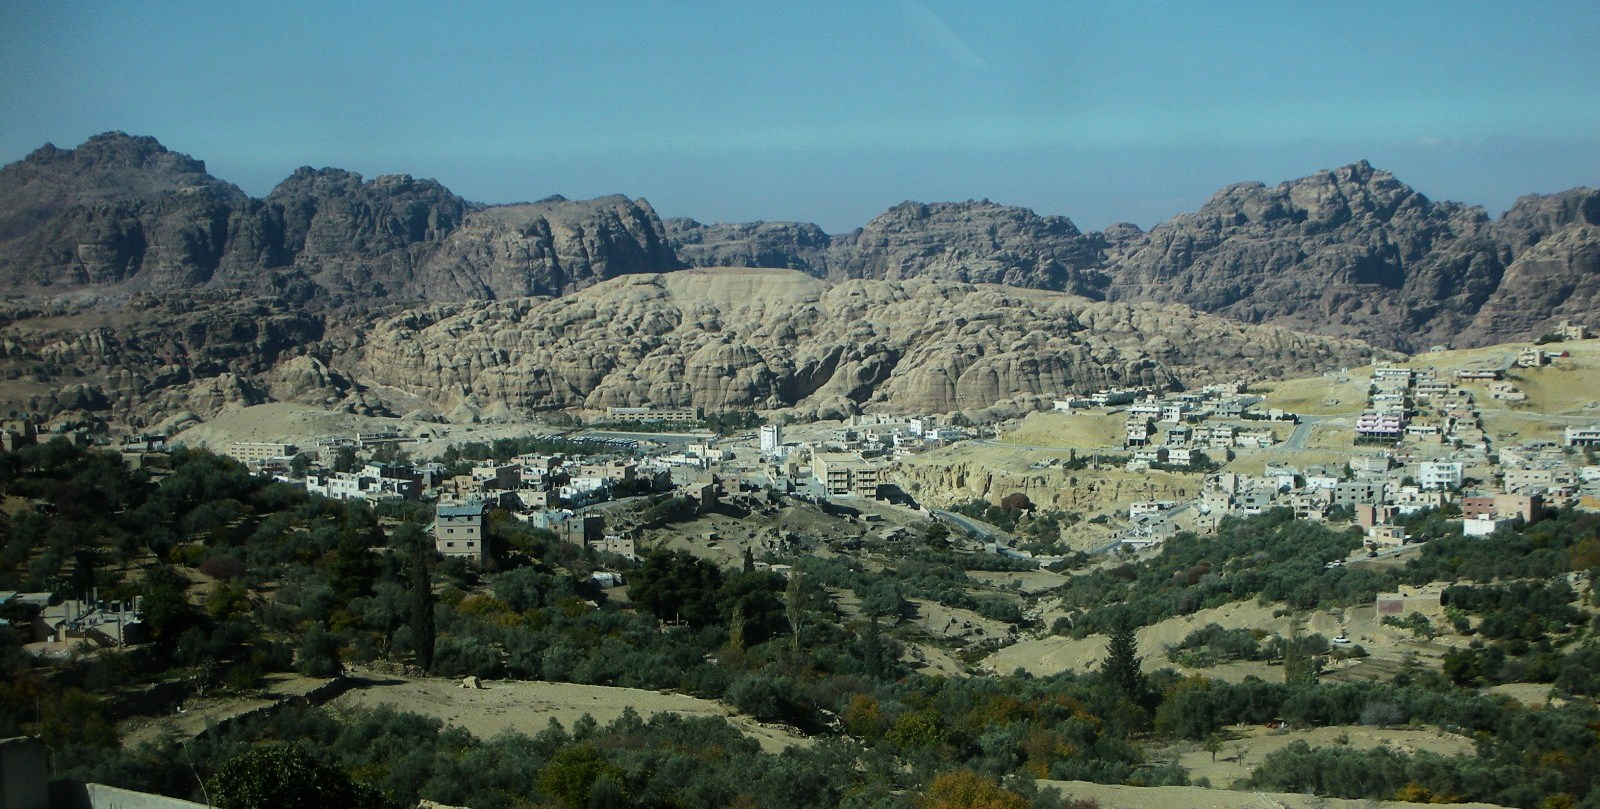 The village of Wadi Musa with the imposing Petran mountainscape beyond